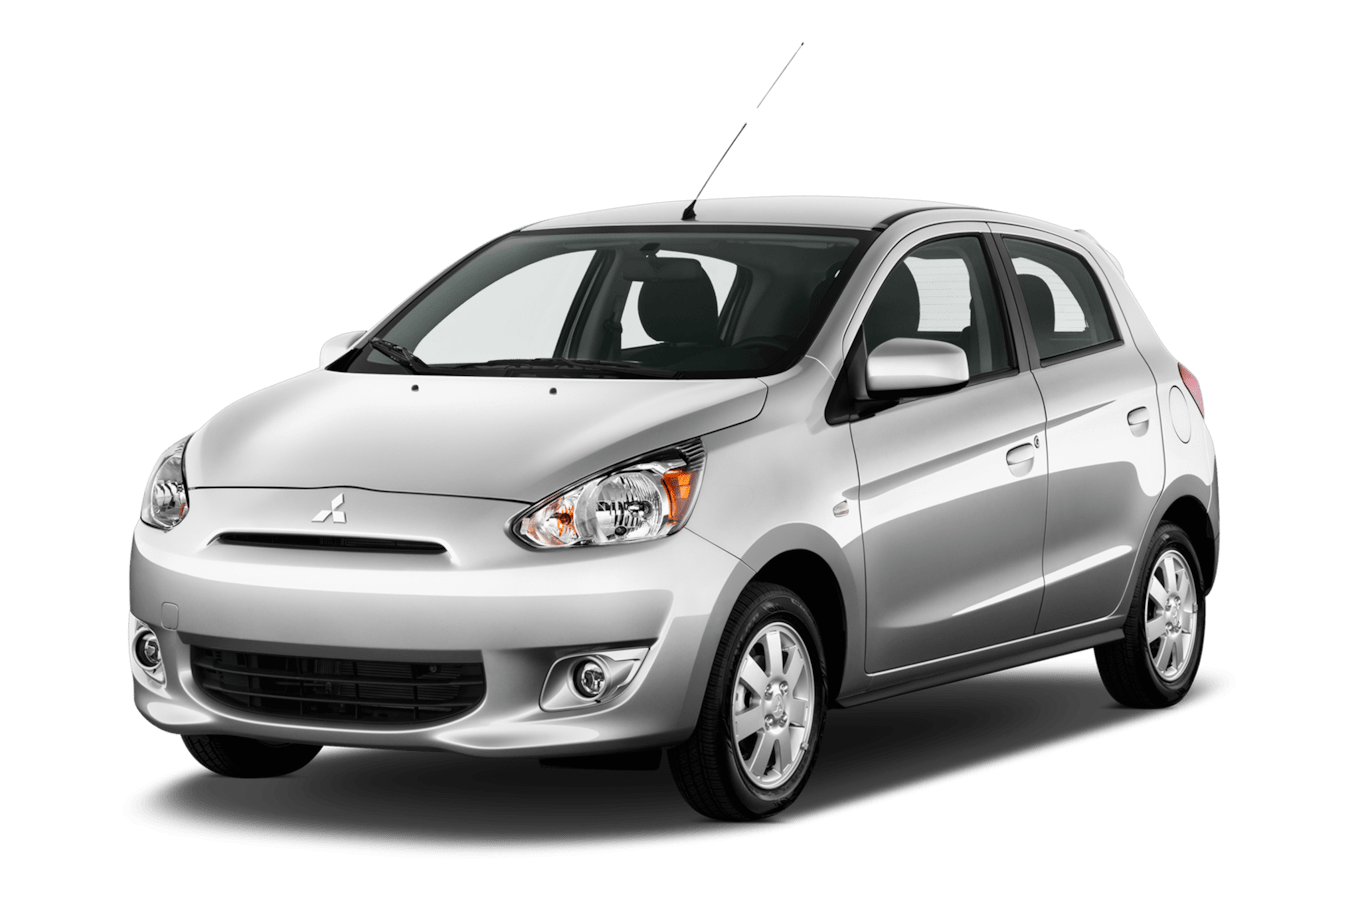 2015 mitsubishi mirage reviews research mirage prices specs 2015 mitsubishi mirage engine diagram [ 392:261 x 1360 Pixel ]